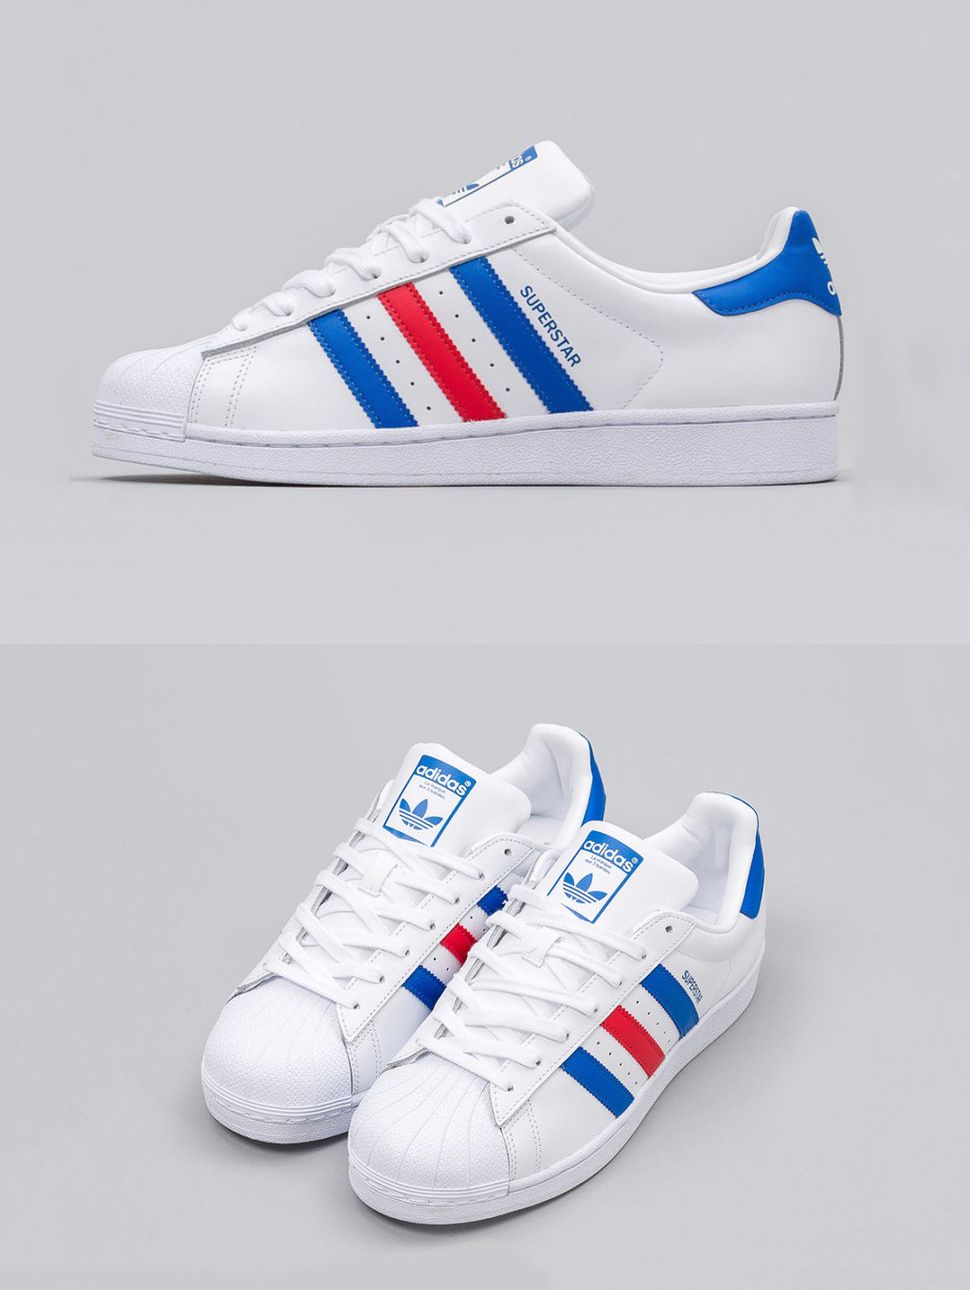 adidas superstar rose gold nordstroms adidas superstar mens white blue